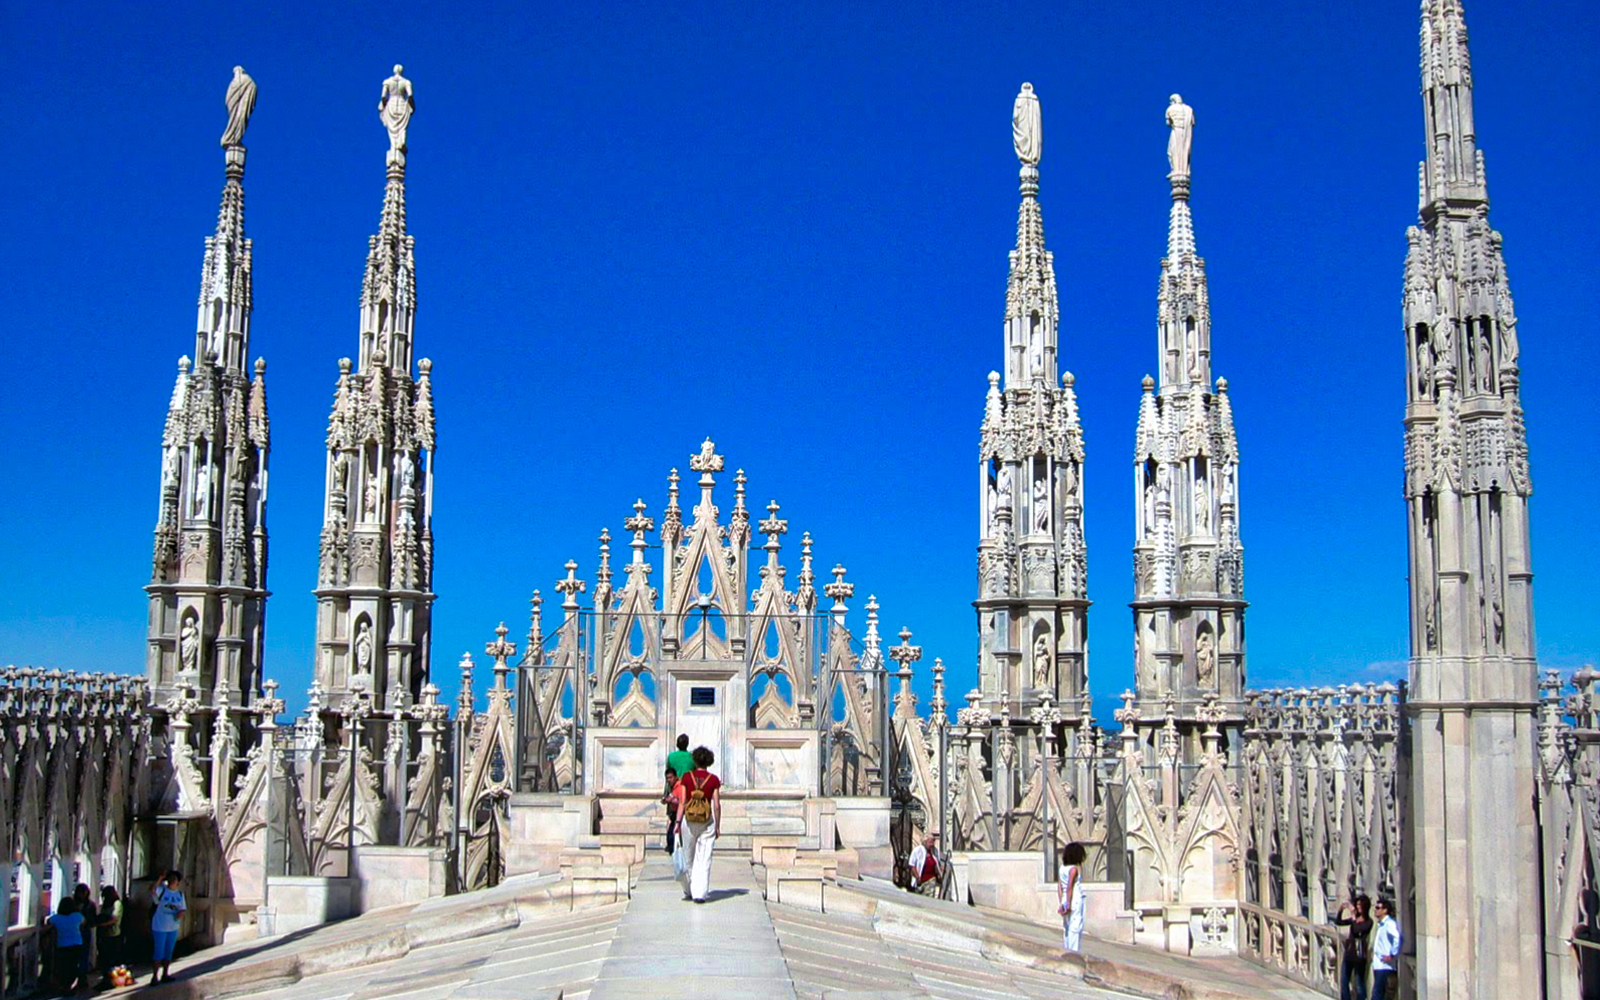 57566c9a 00a9 4fd2 85a8 33b5bd4fd1a9  duomo and milan walking tour 02